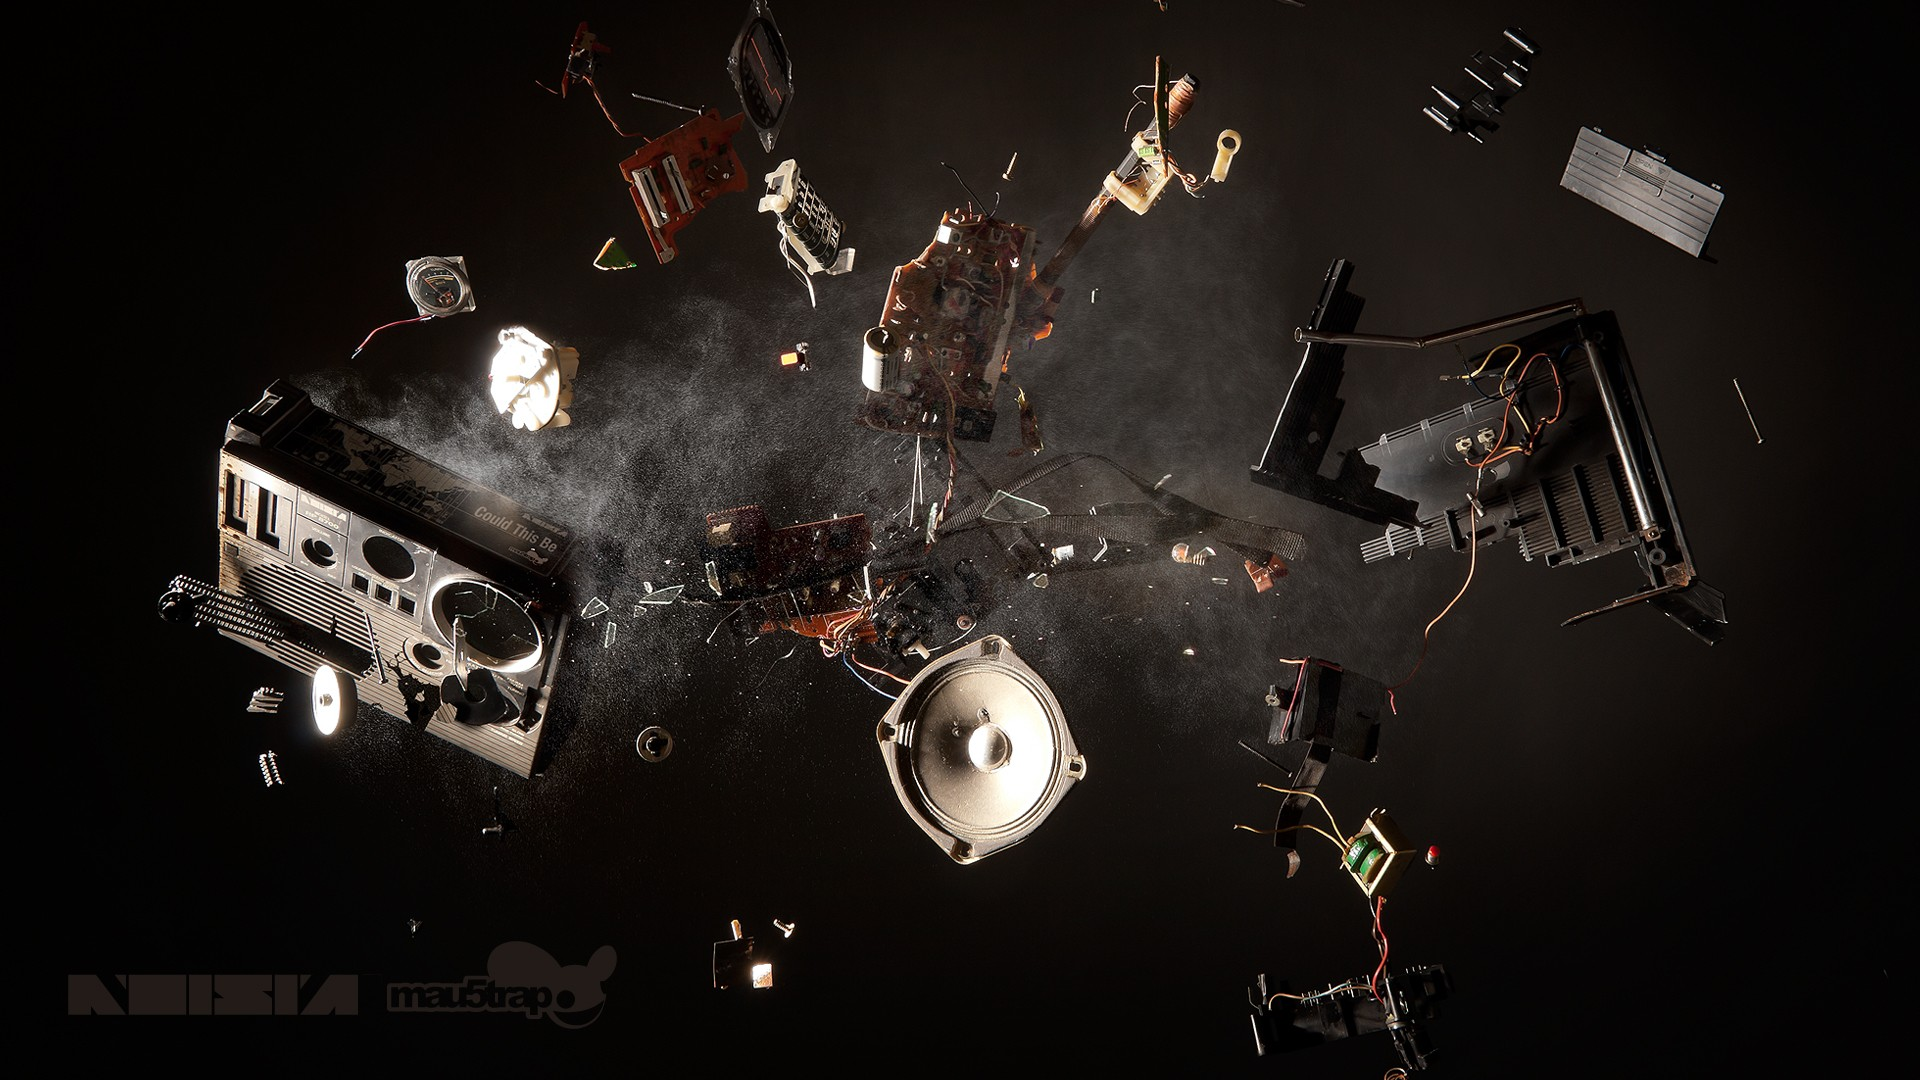 Wallpaper download music - Hd Music As Much As We Possibly Can We Already Have Rattle Records